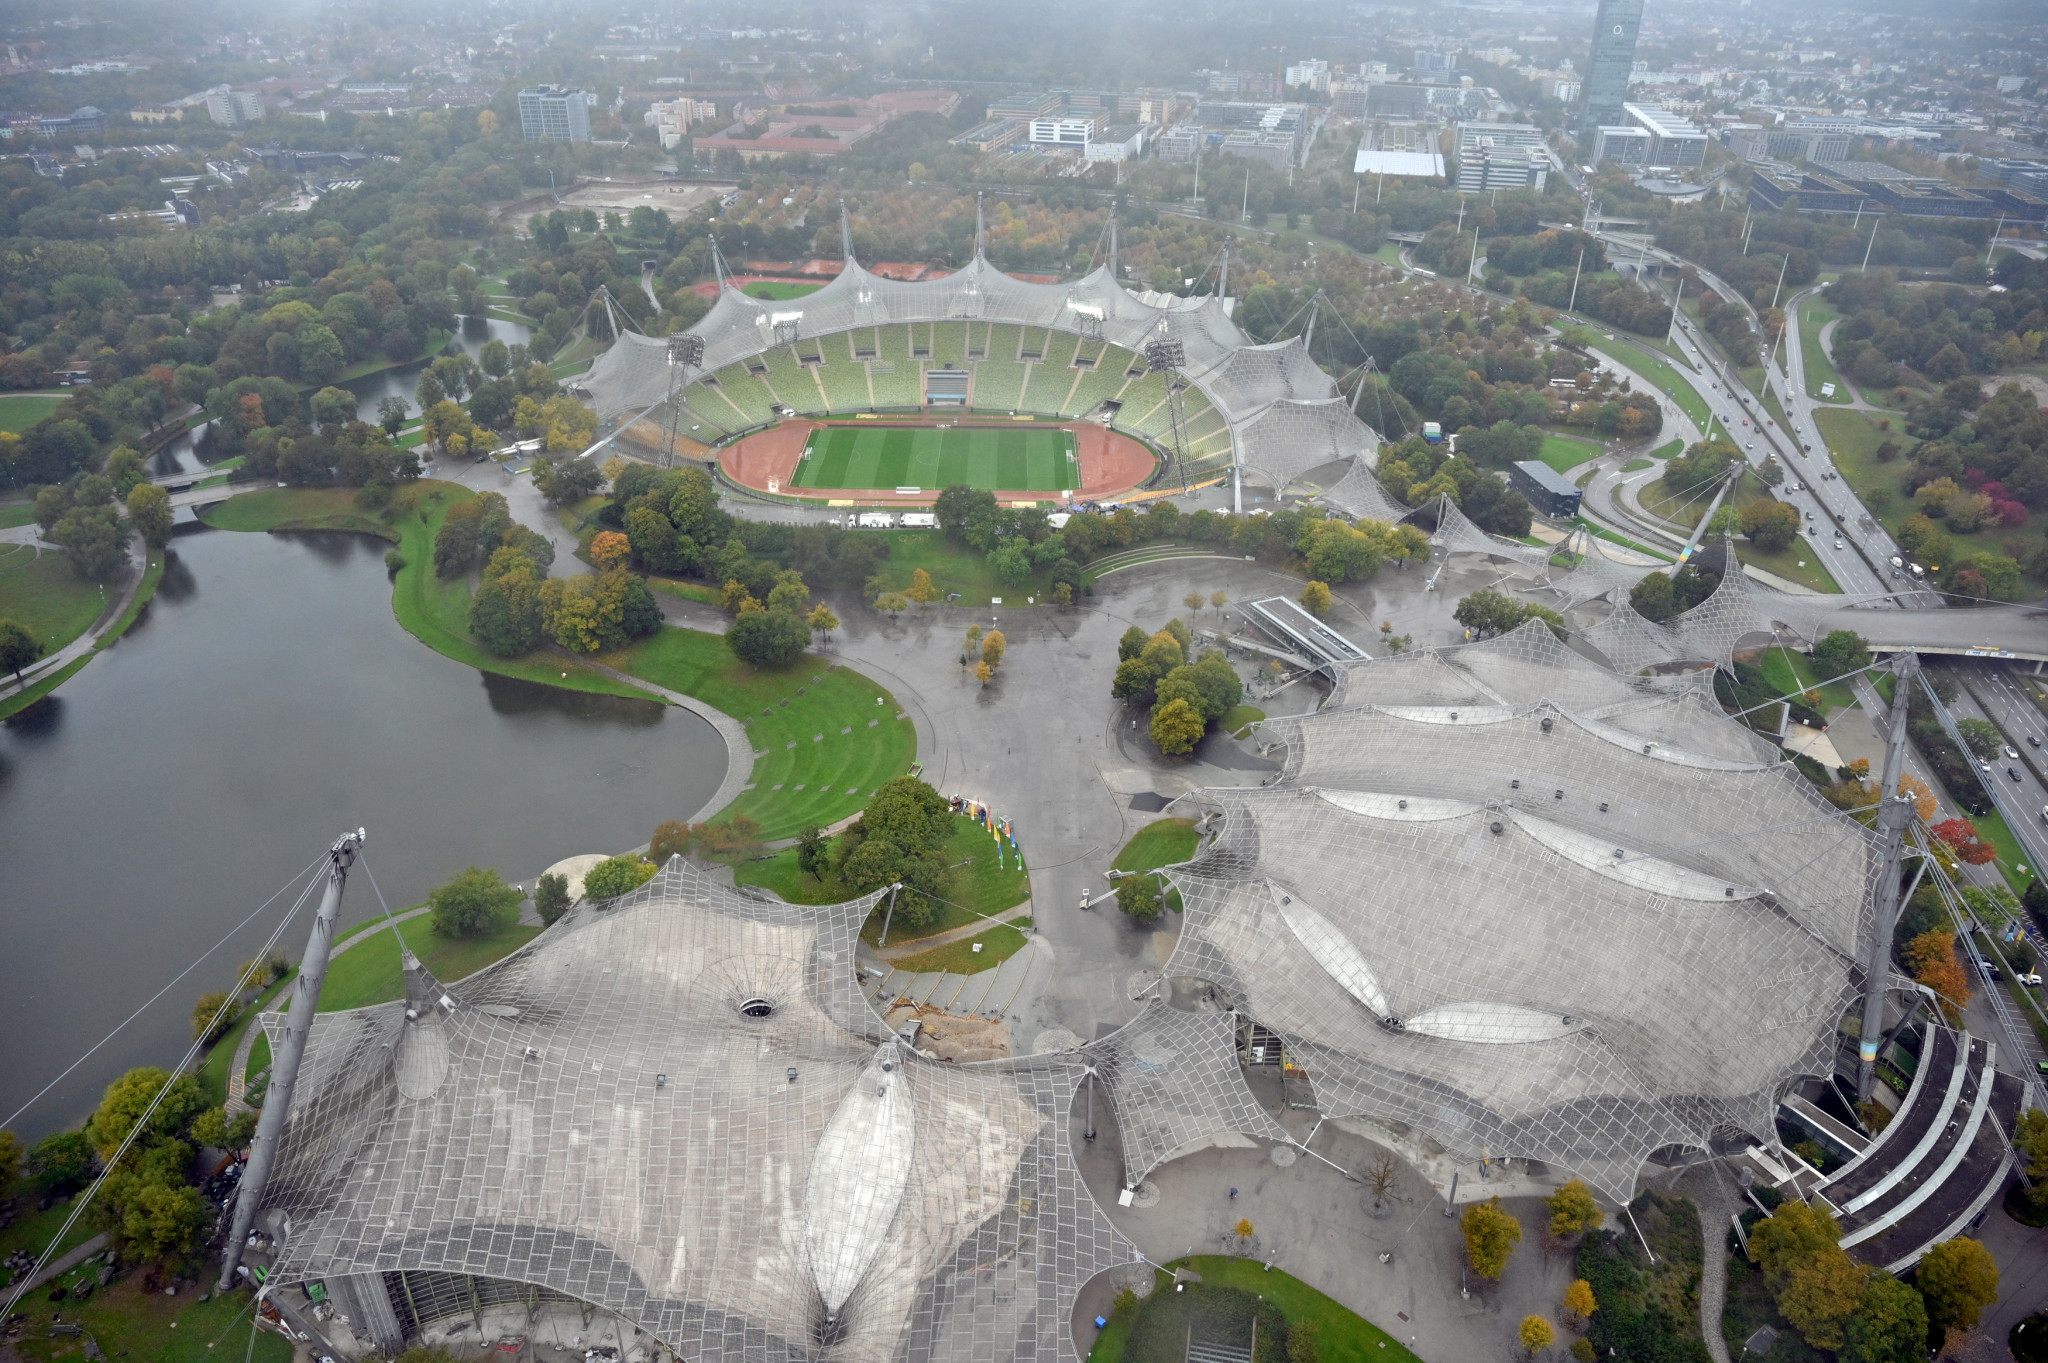 Sustainability to be focus of Munich 2022 European Championships, organisers pledge